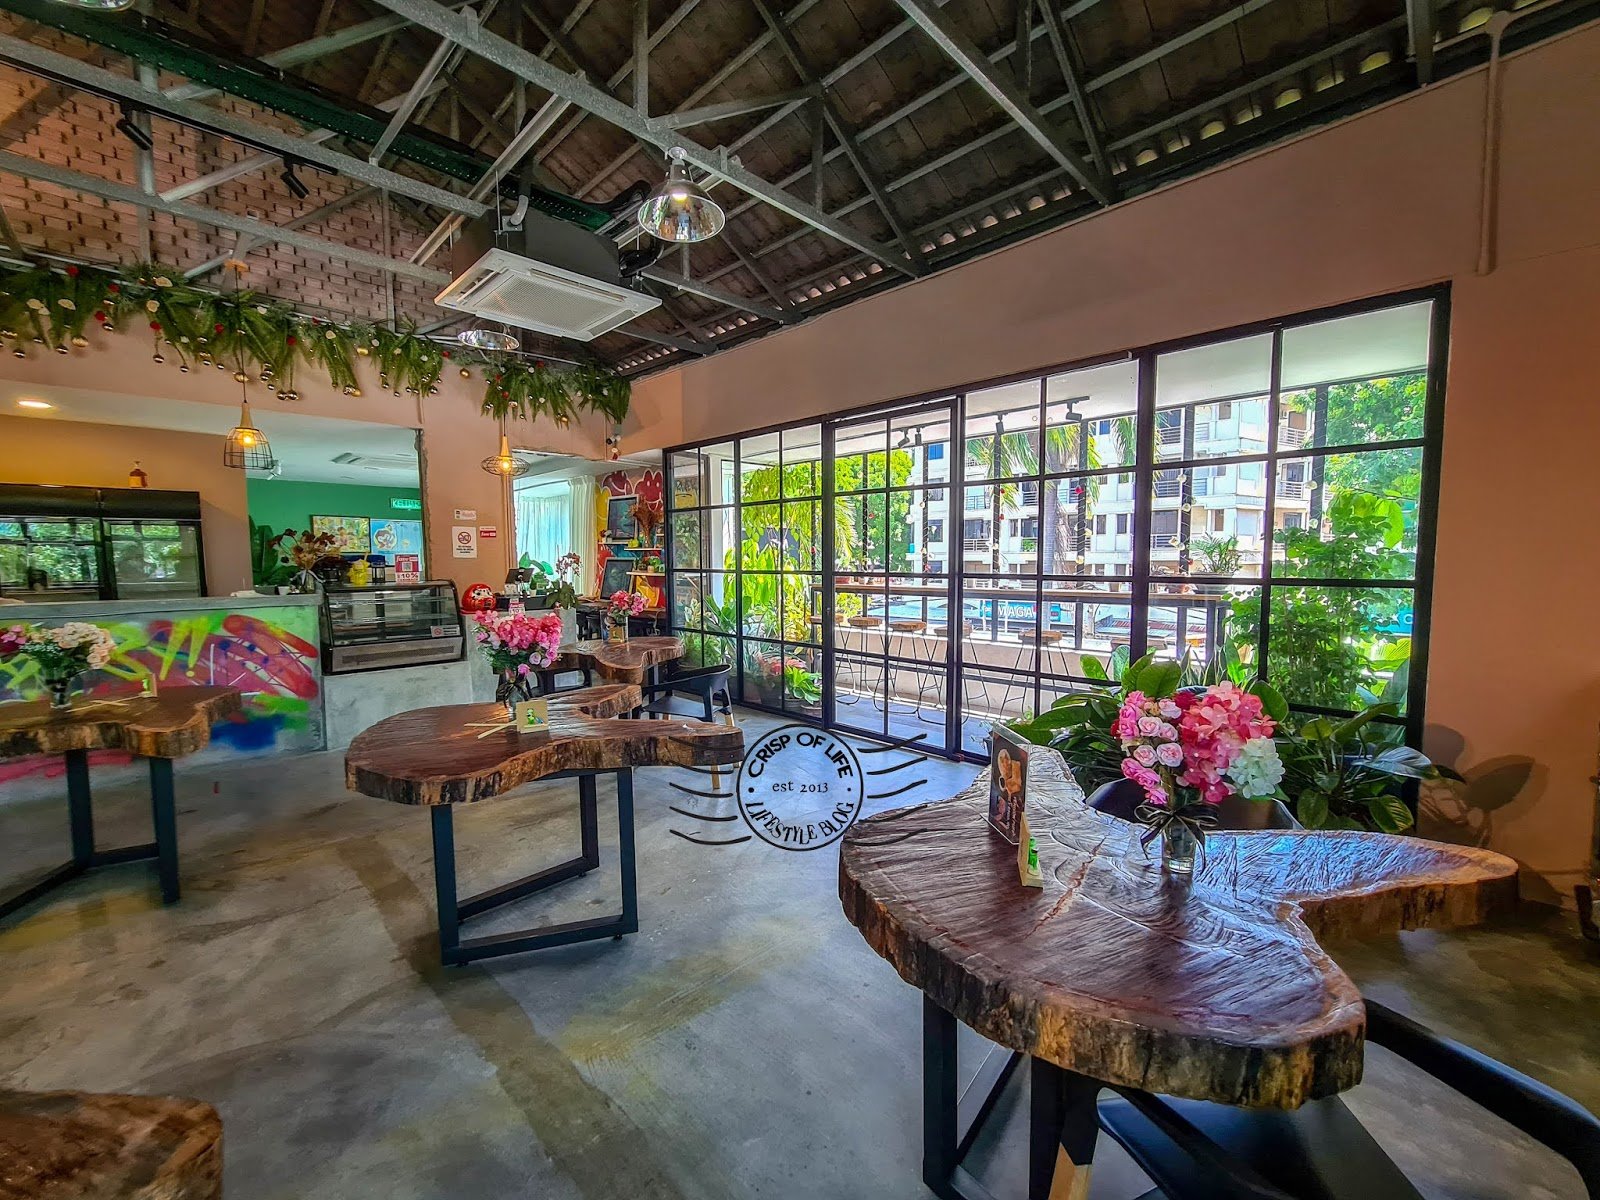 Hidden Beautiful Nature Themed Cafe - The Busy Monet @ Vantage Point, Jelutong, Penang